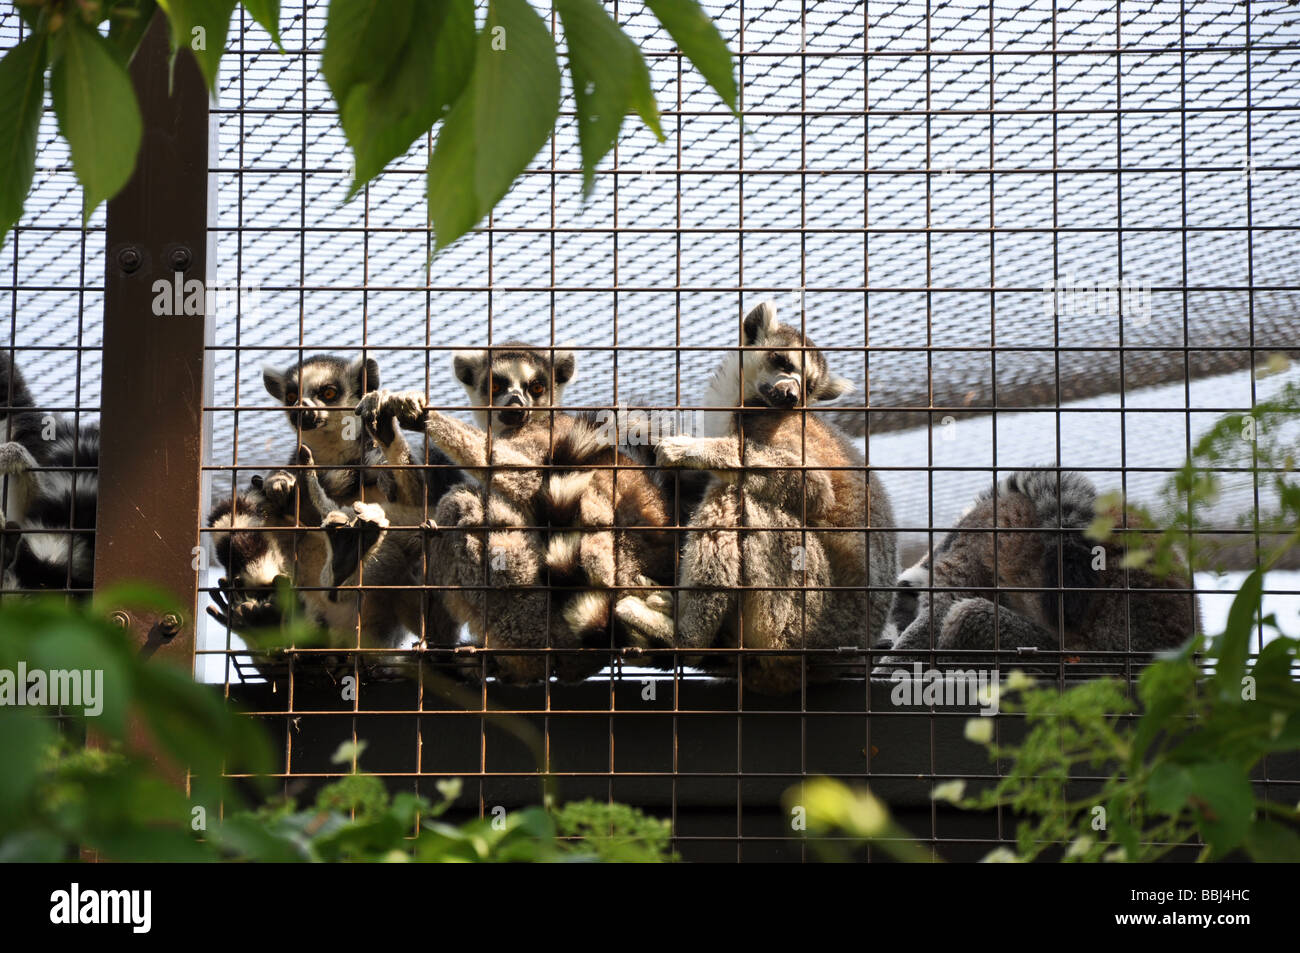 Madagascan ring tailed lemurs in cage - Stock Image